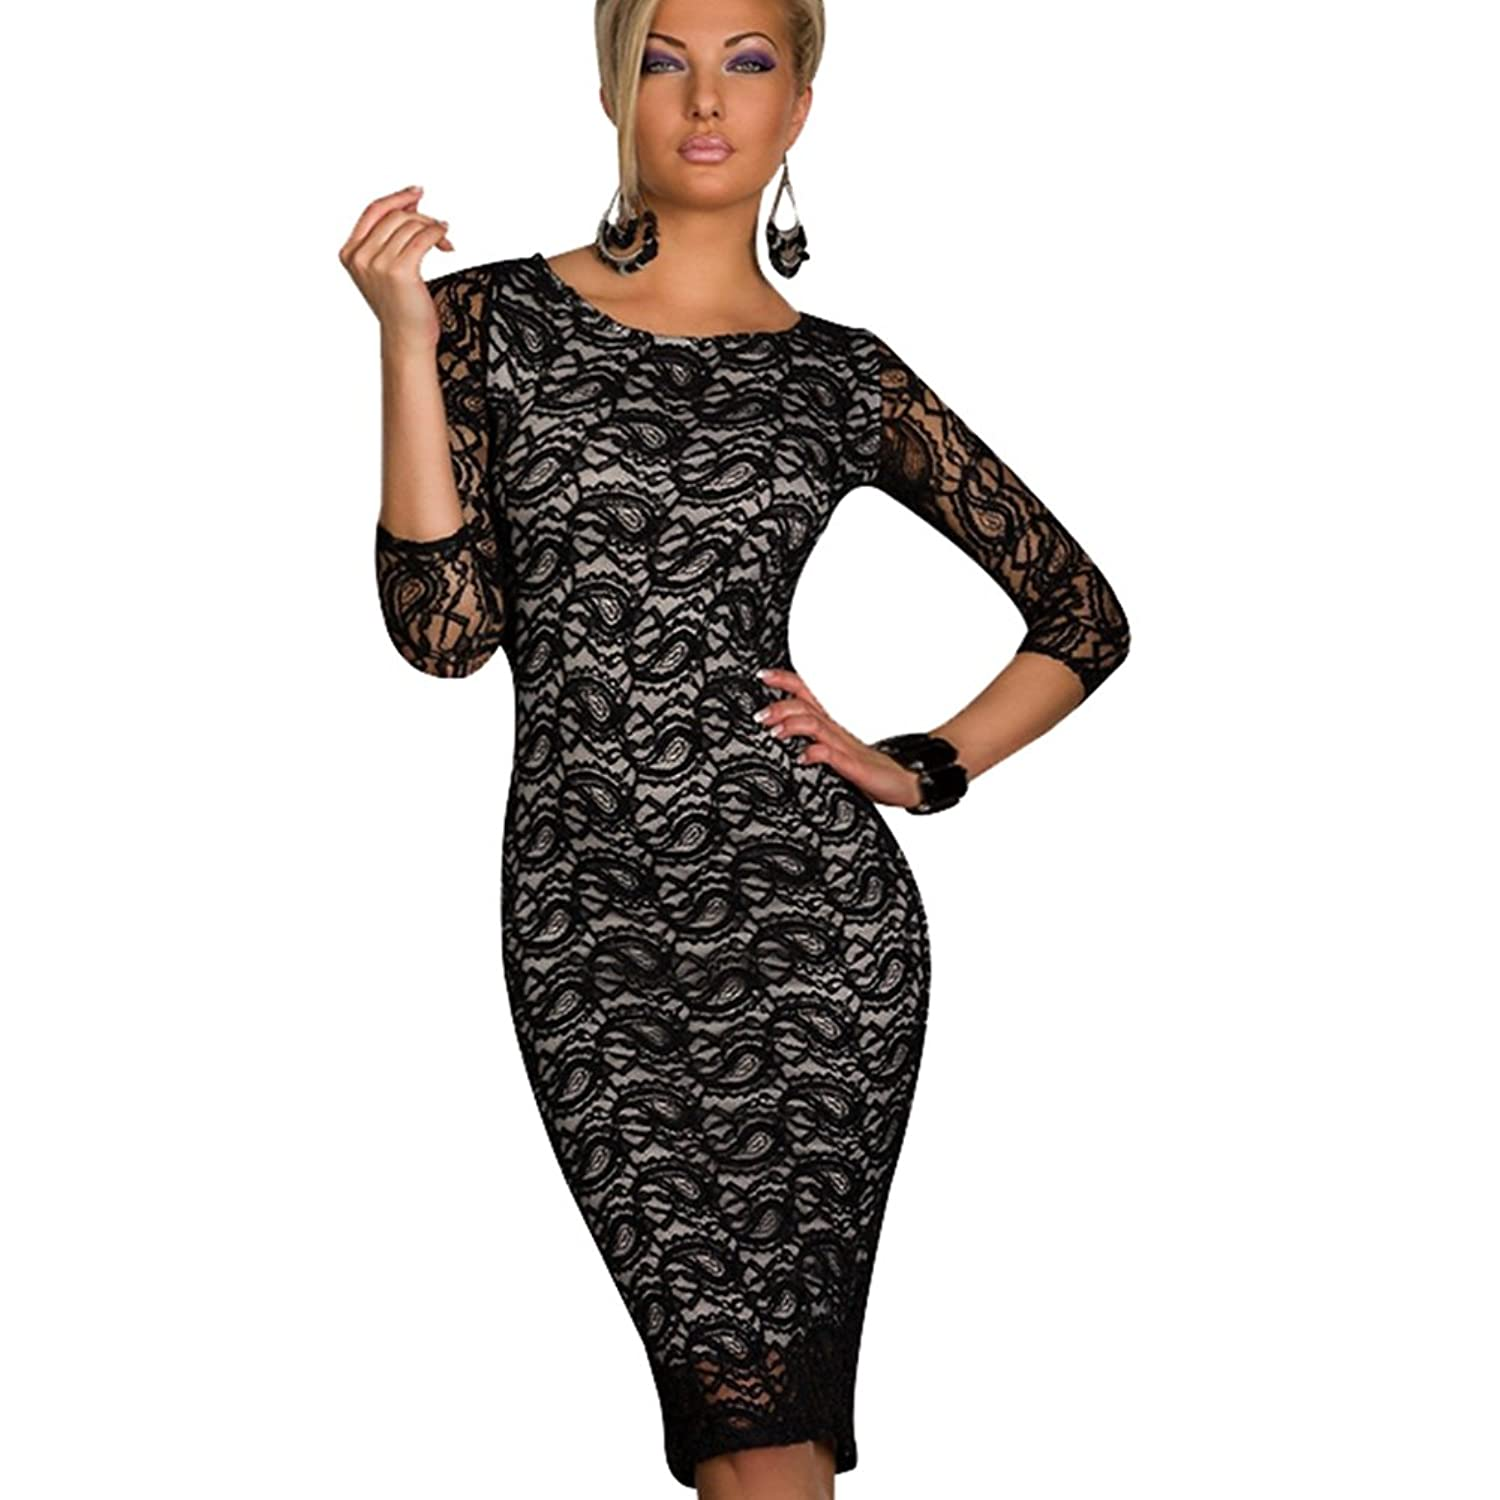 PG Teen Girl Vintage Lace Evening Bodycon Dress Homecoming Dress Party Dress Black